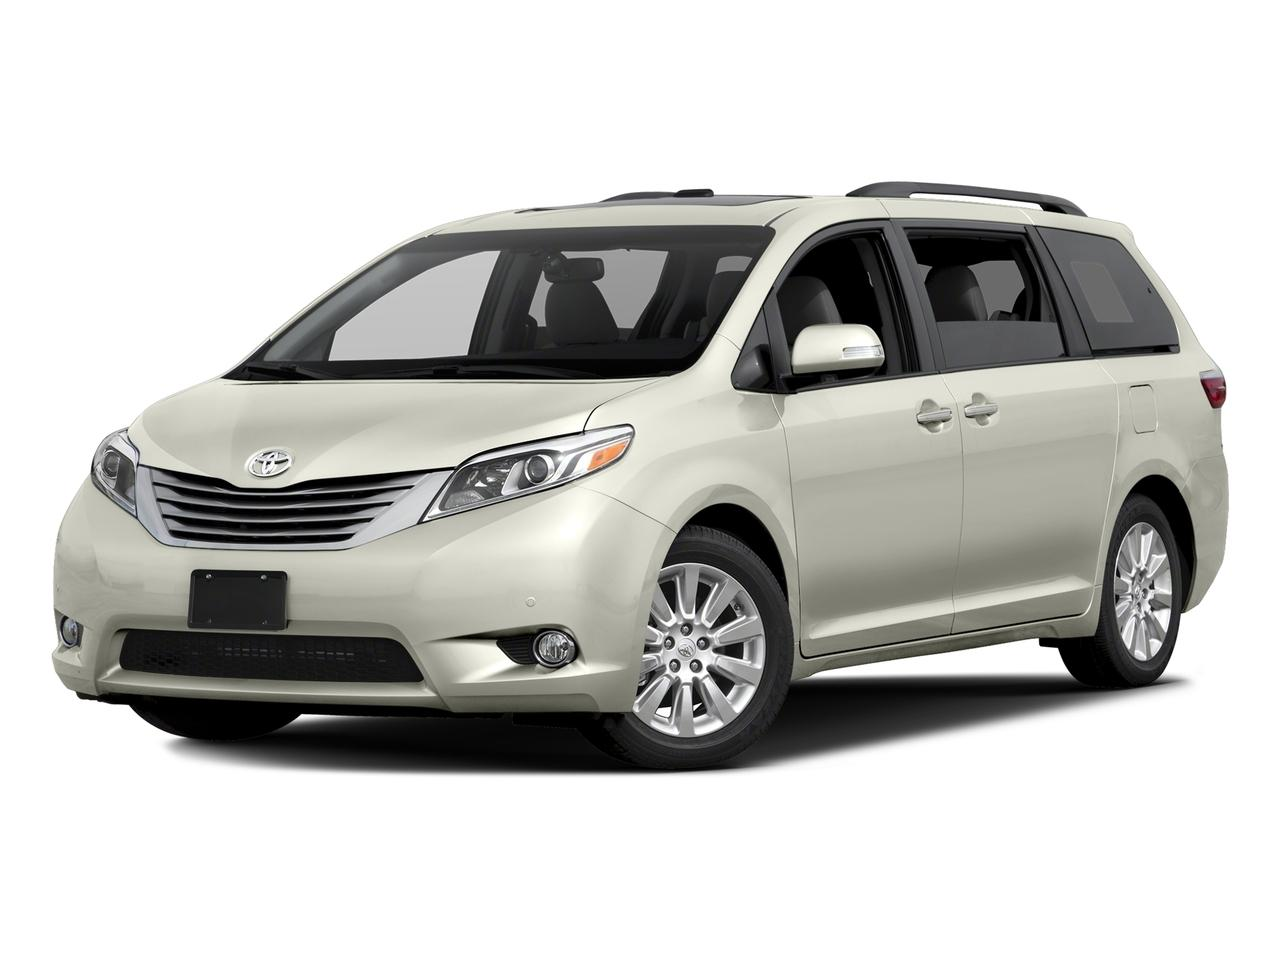 2017 Toyota Sienna Vehicle Photo in Poughkeepsie, NY 12601